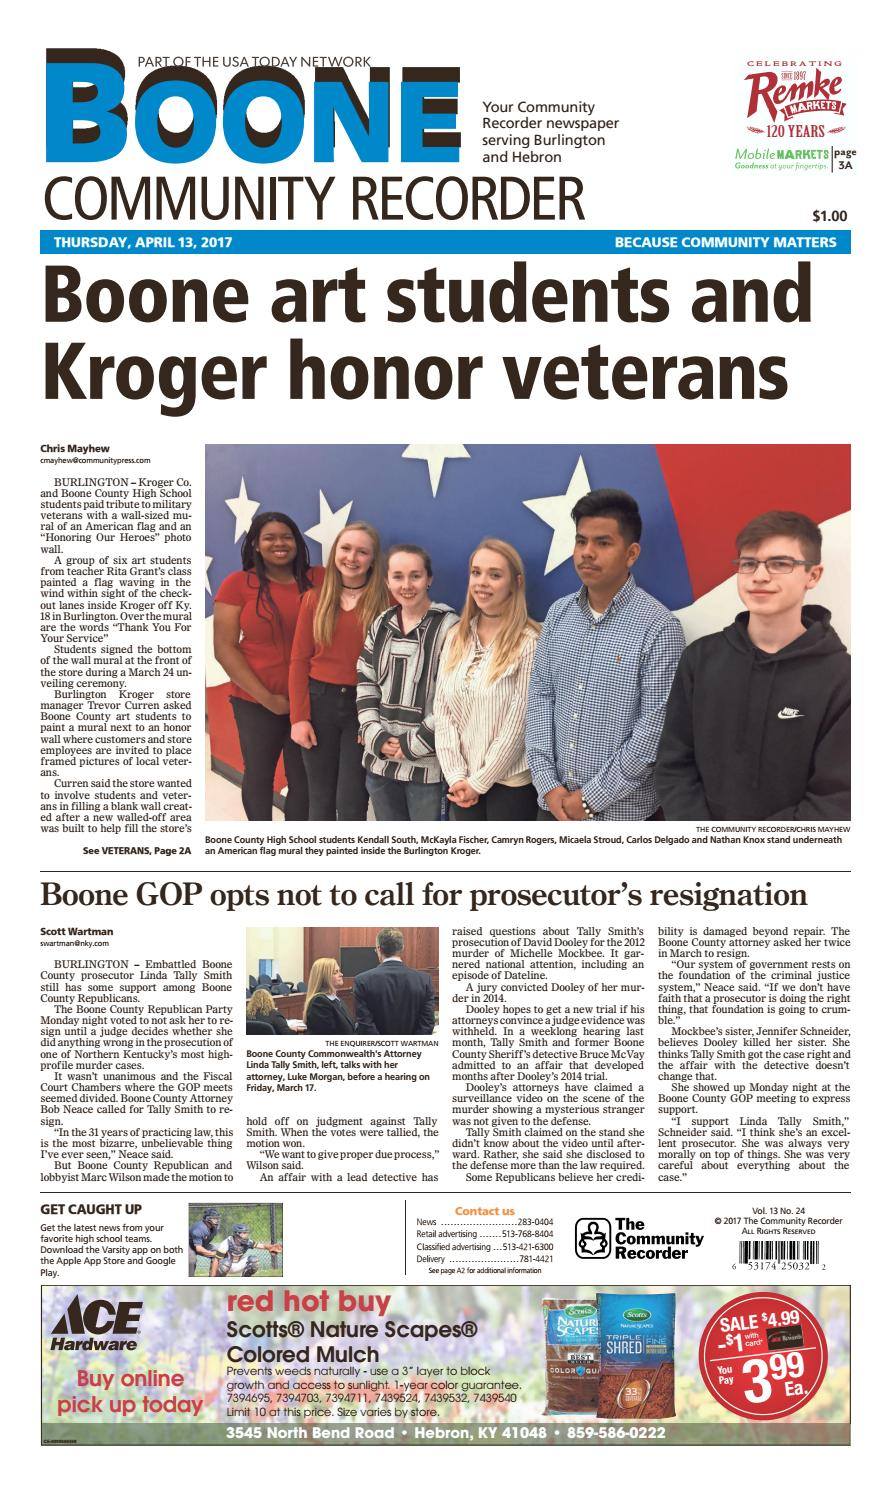 Boone Community Recorder 041317 By Enquirer Media Issuu